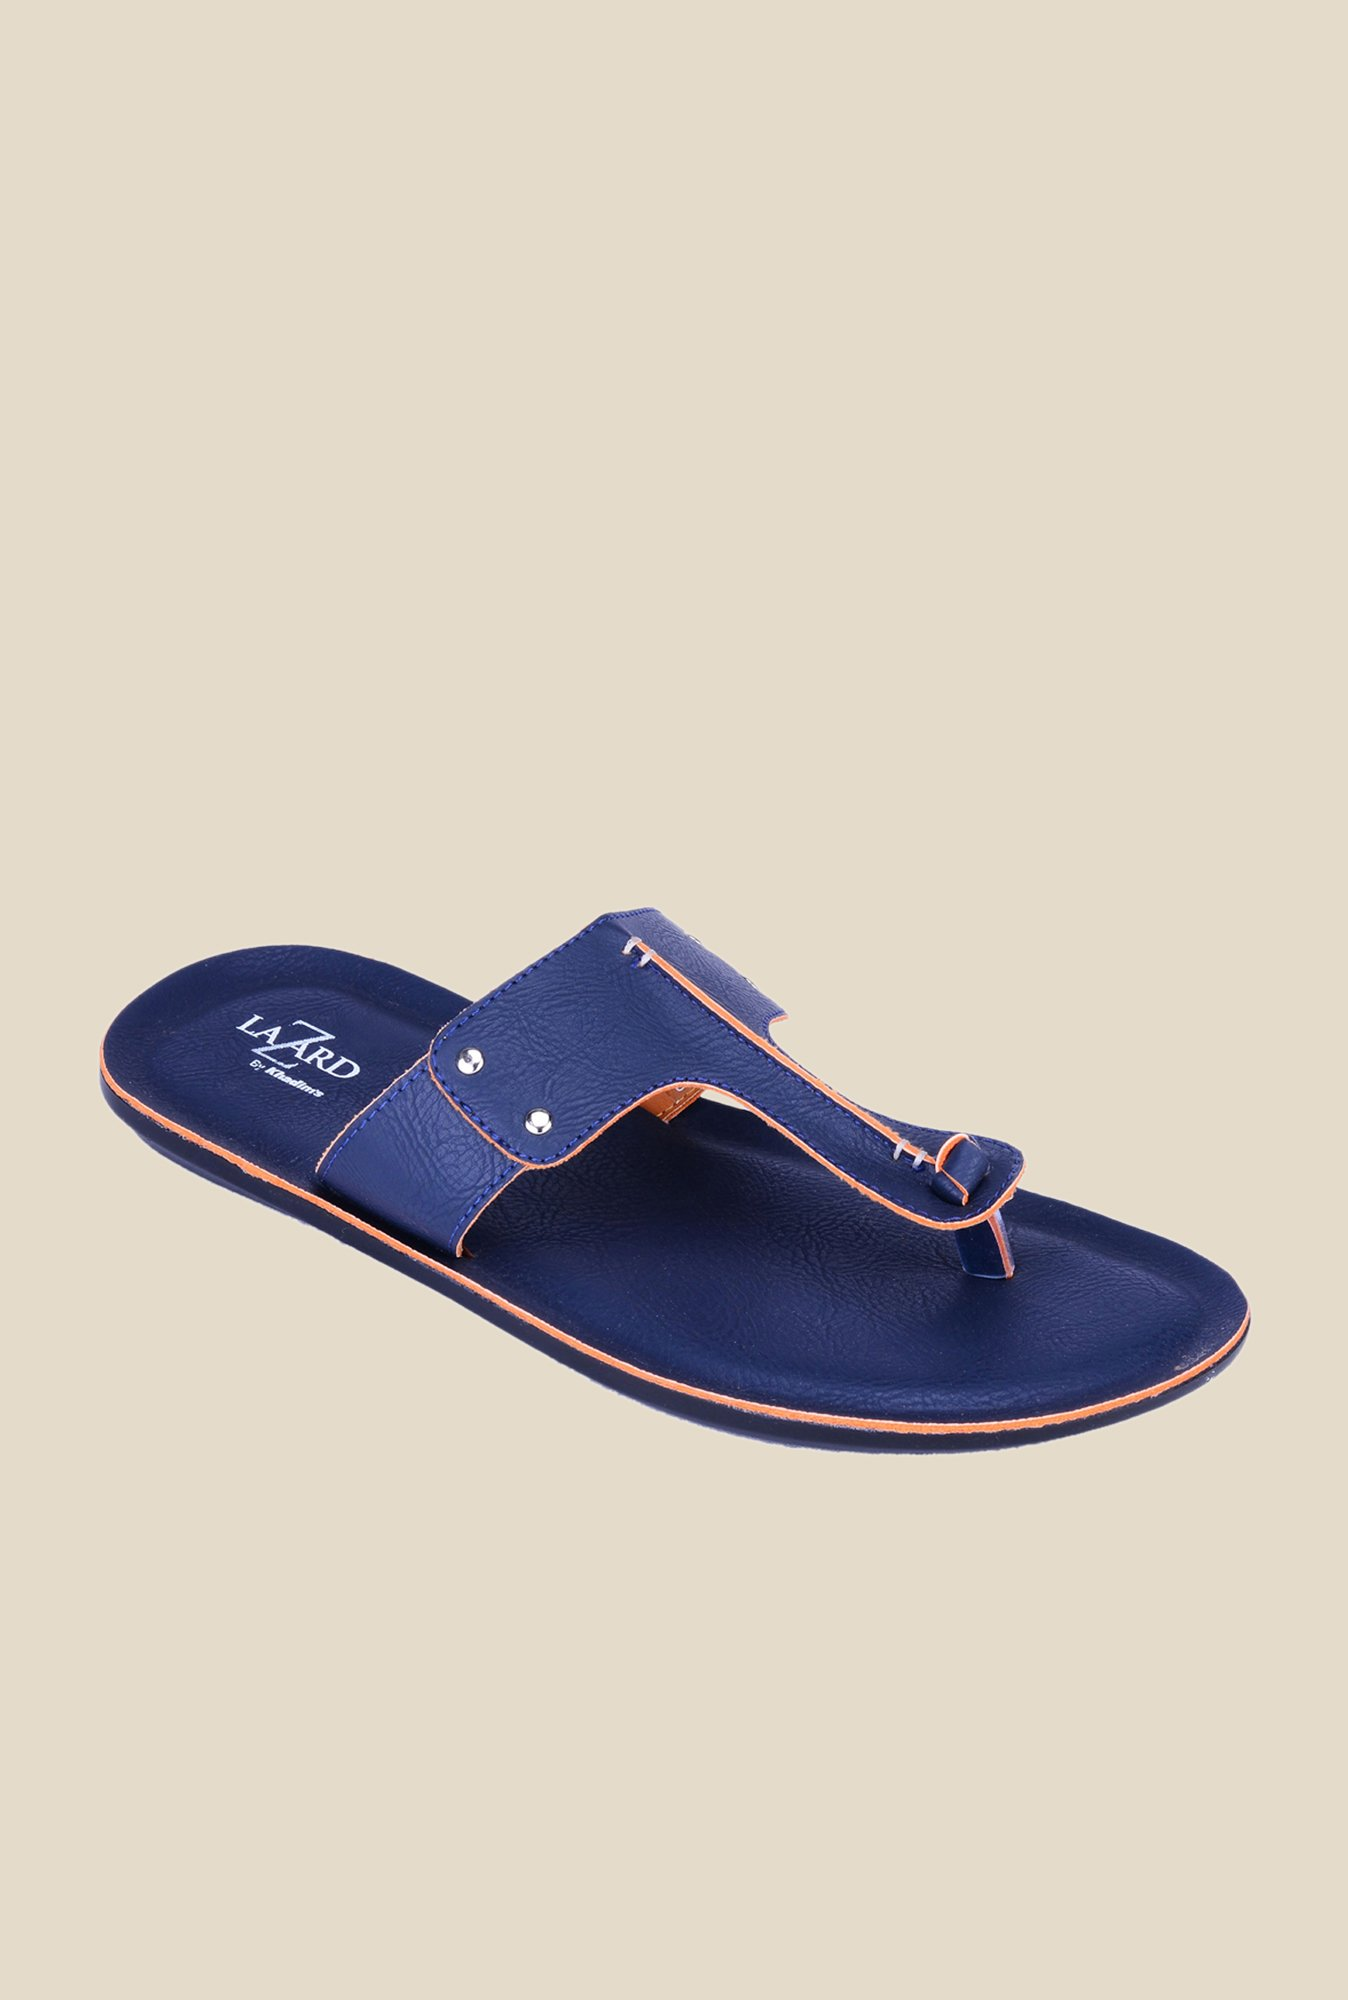 Khadim's Lazard Blue T-Strap Sandals